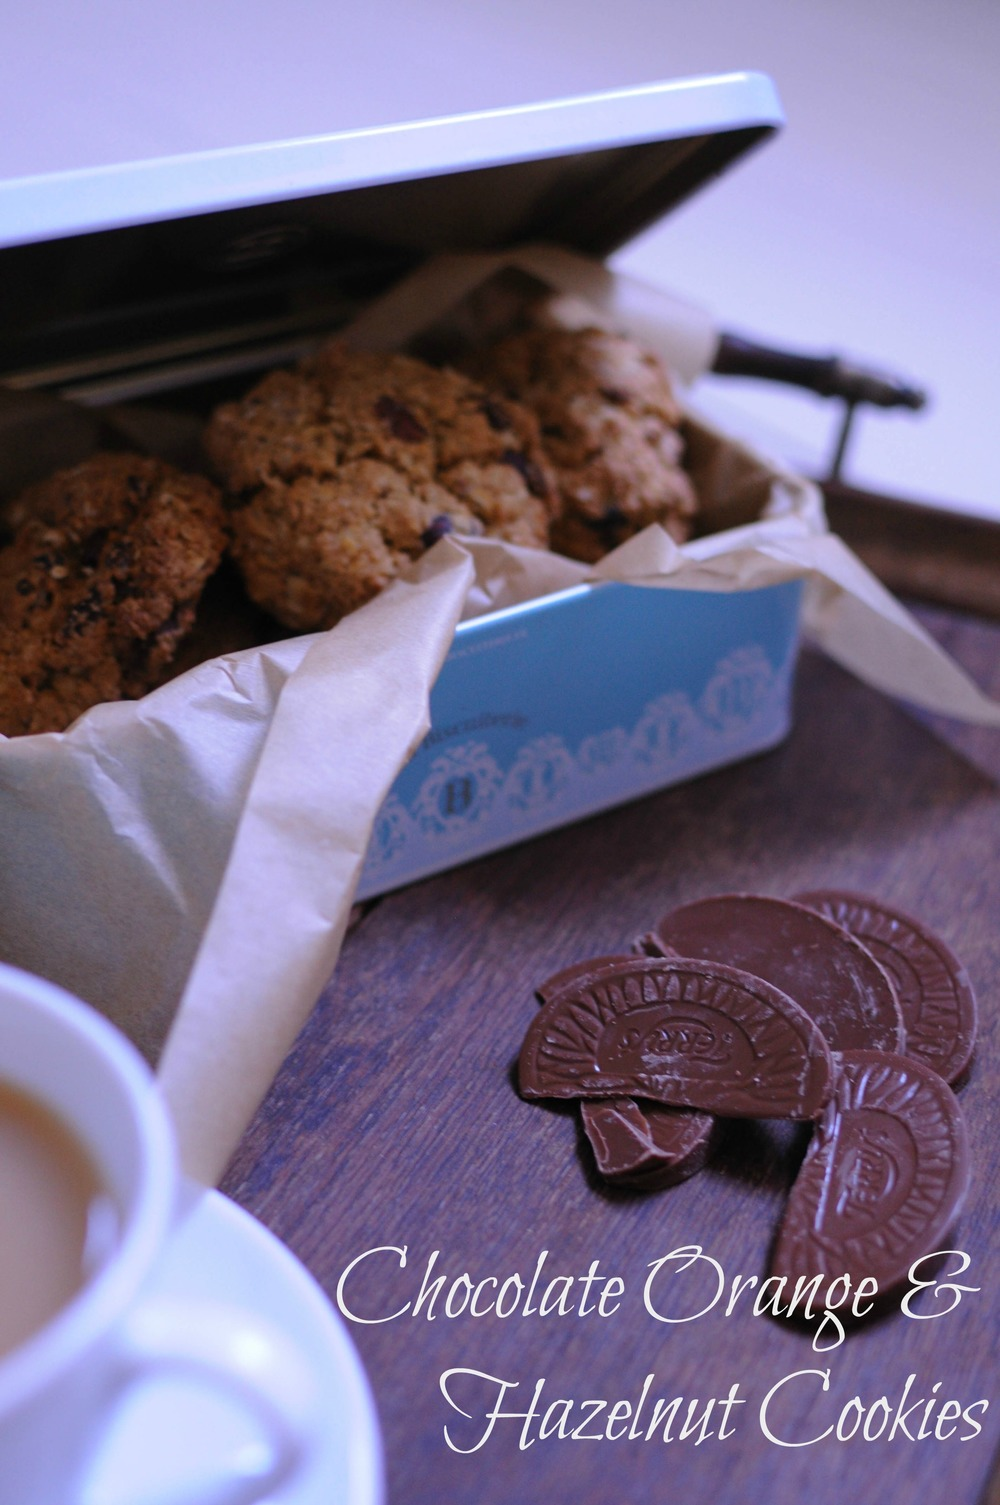 Chocolate Orange & Hazelnut Cookie recipe Via A Playful Day